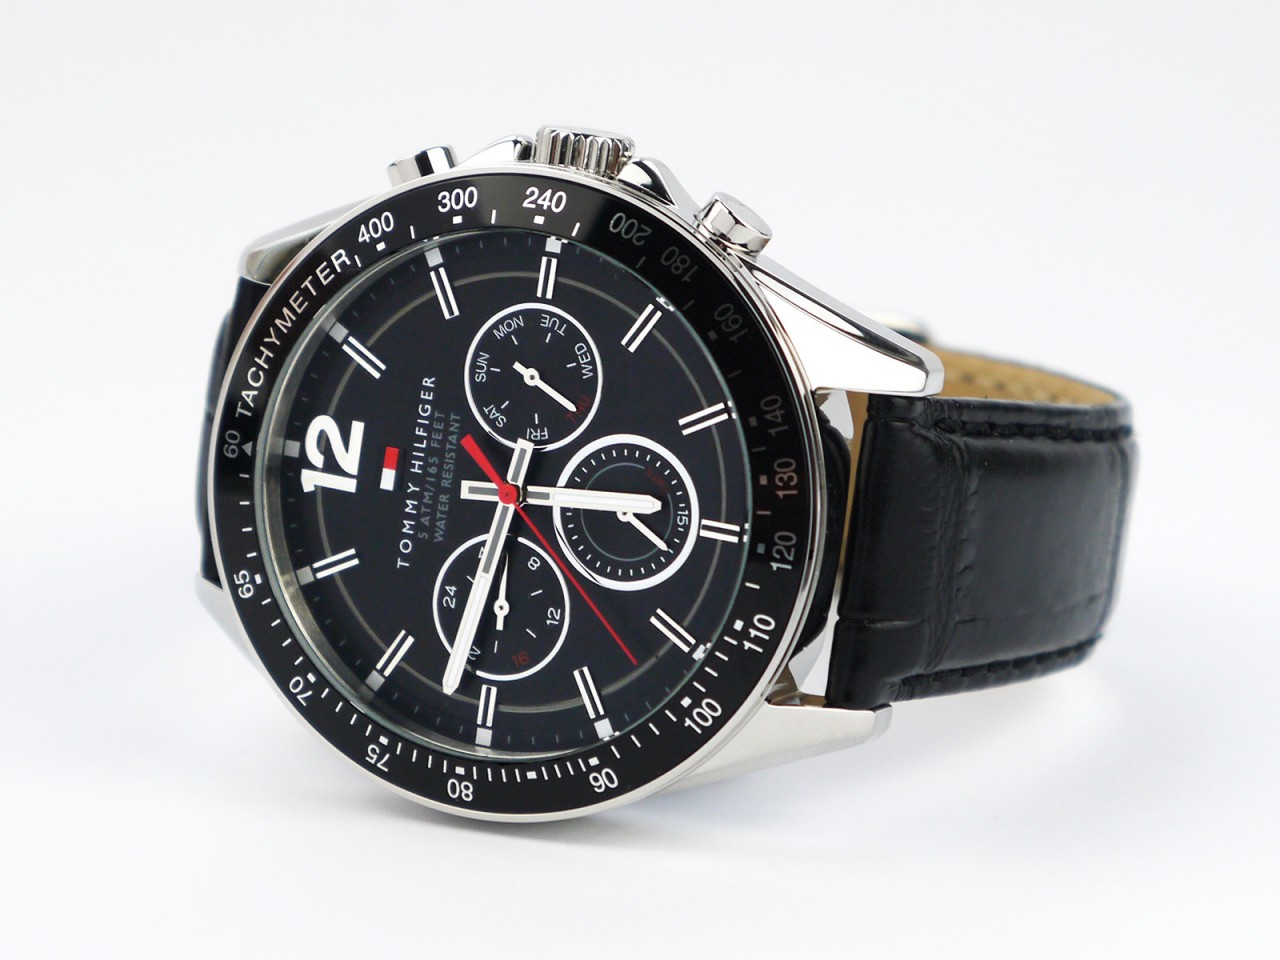 53c2d0b57 Tommy Hilfiger 1791117 Sophisticated Sport Watch With Black Leather Band